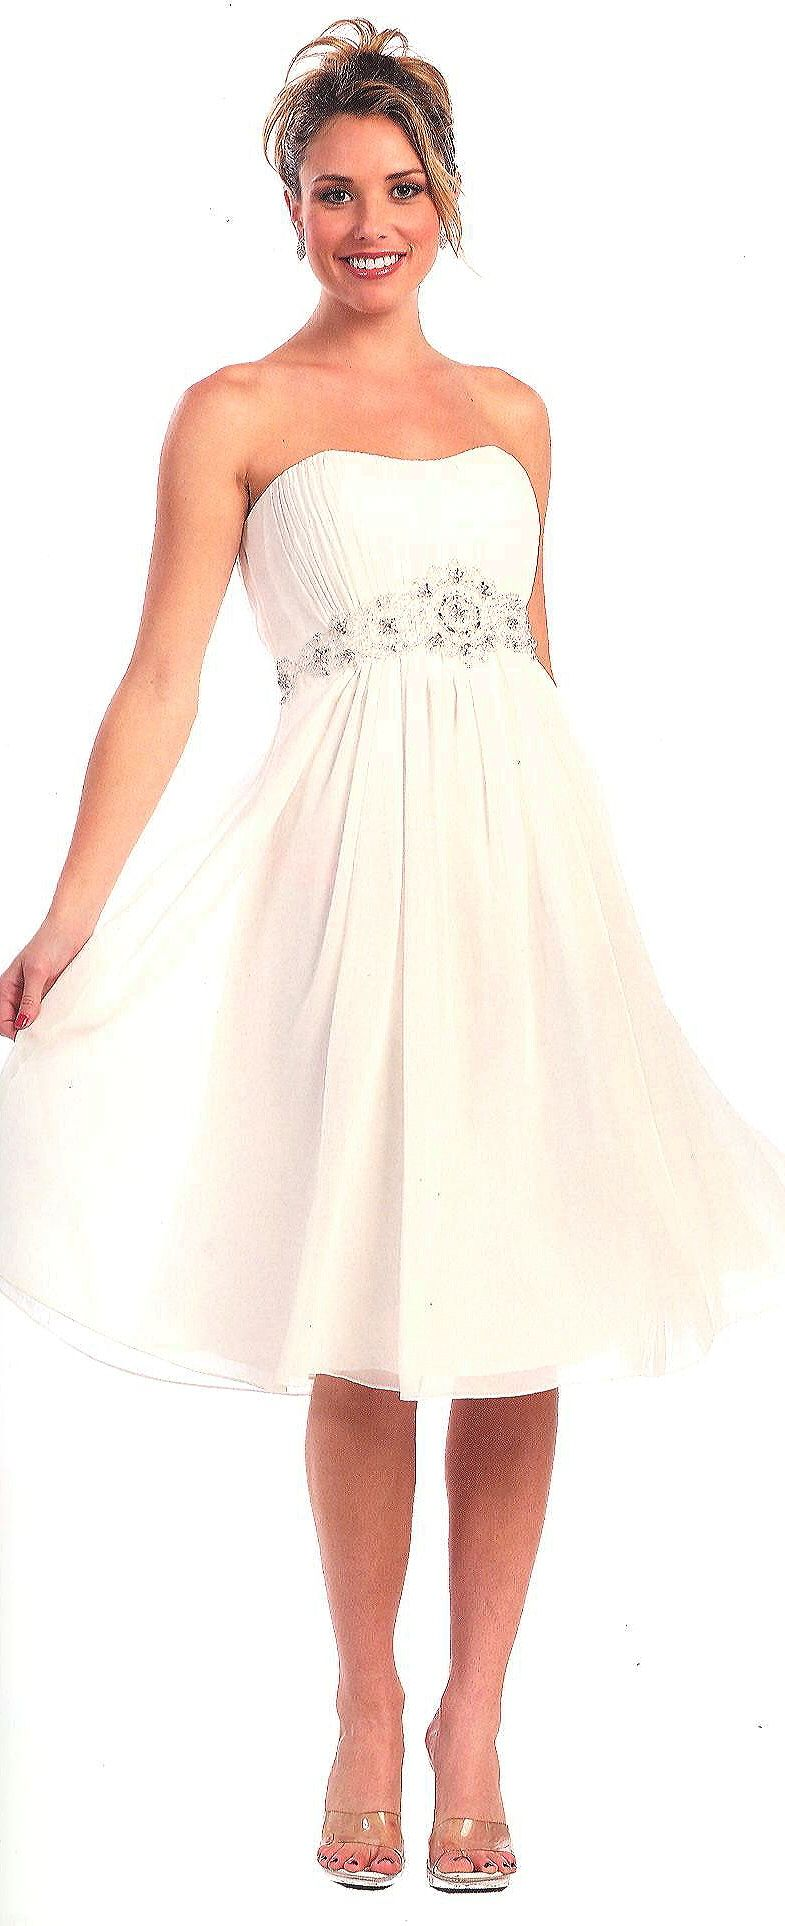 Bridesmaid Dress under $8090085Bridal Perfect!(Sizes to 4XL in 13 colors - see Style 90075 for Long))